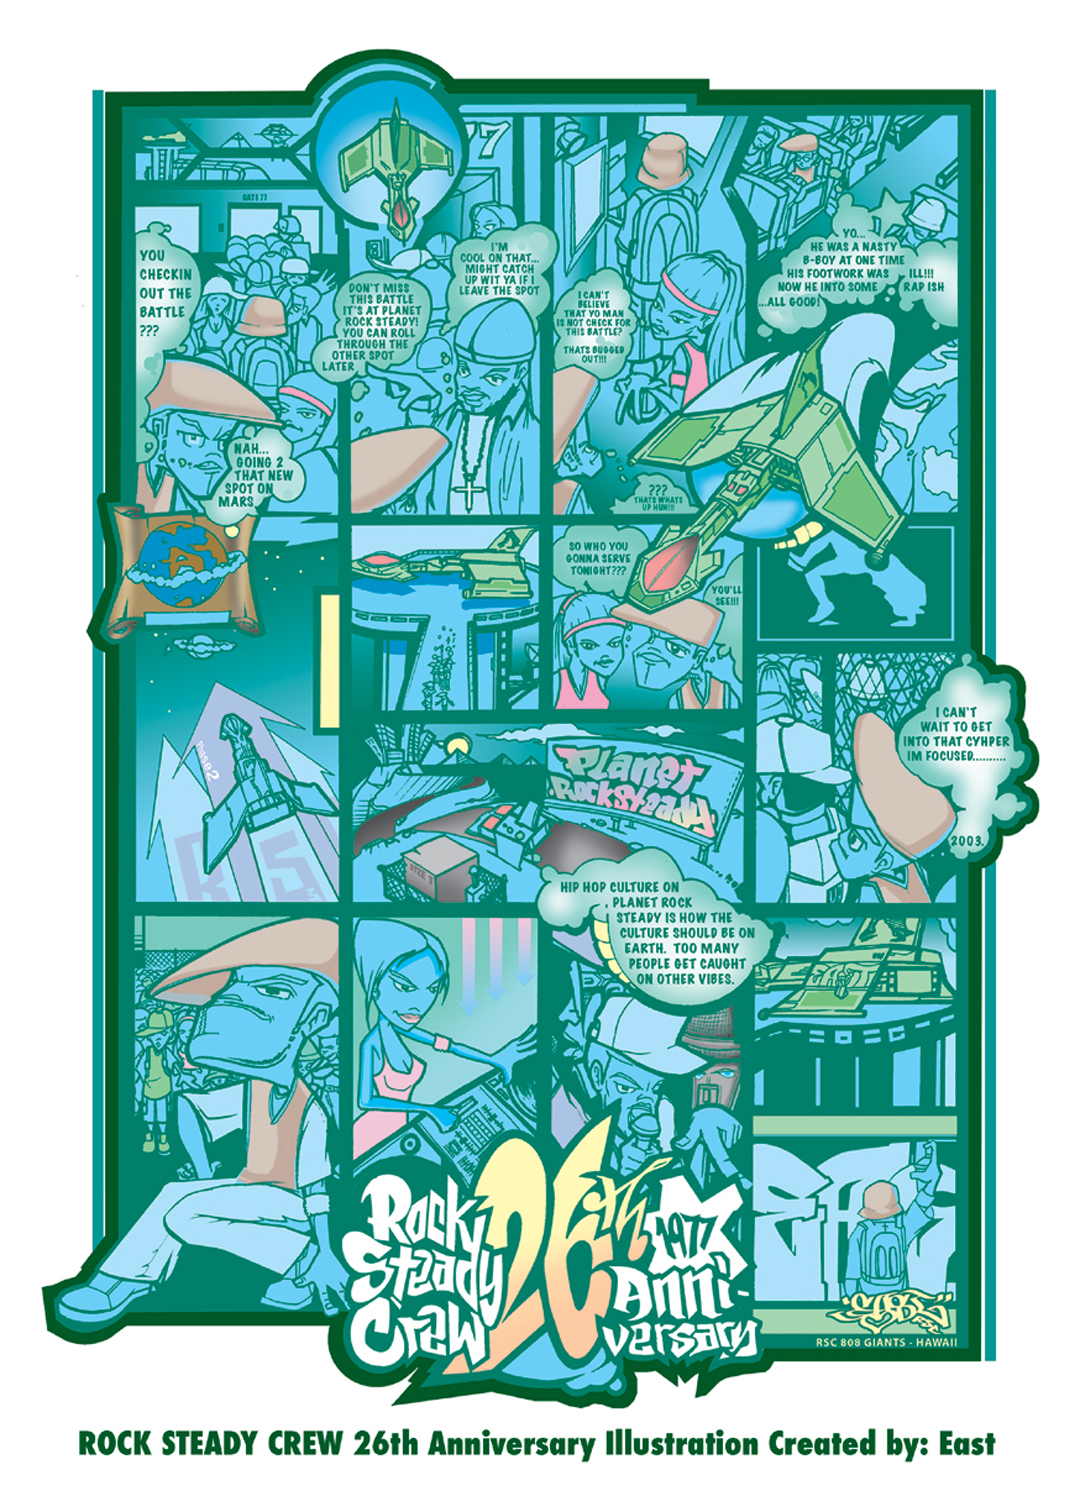 Rock Steady Crew 26th Anniversary art by East3